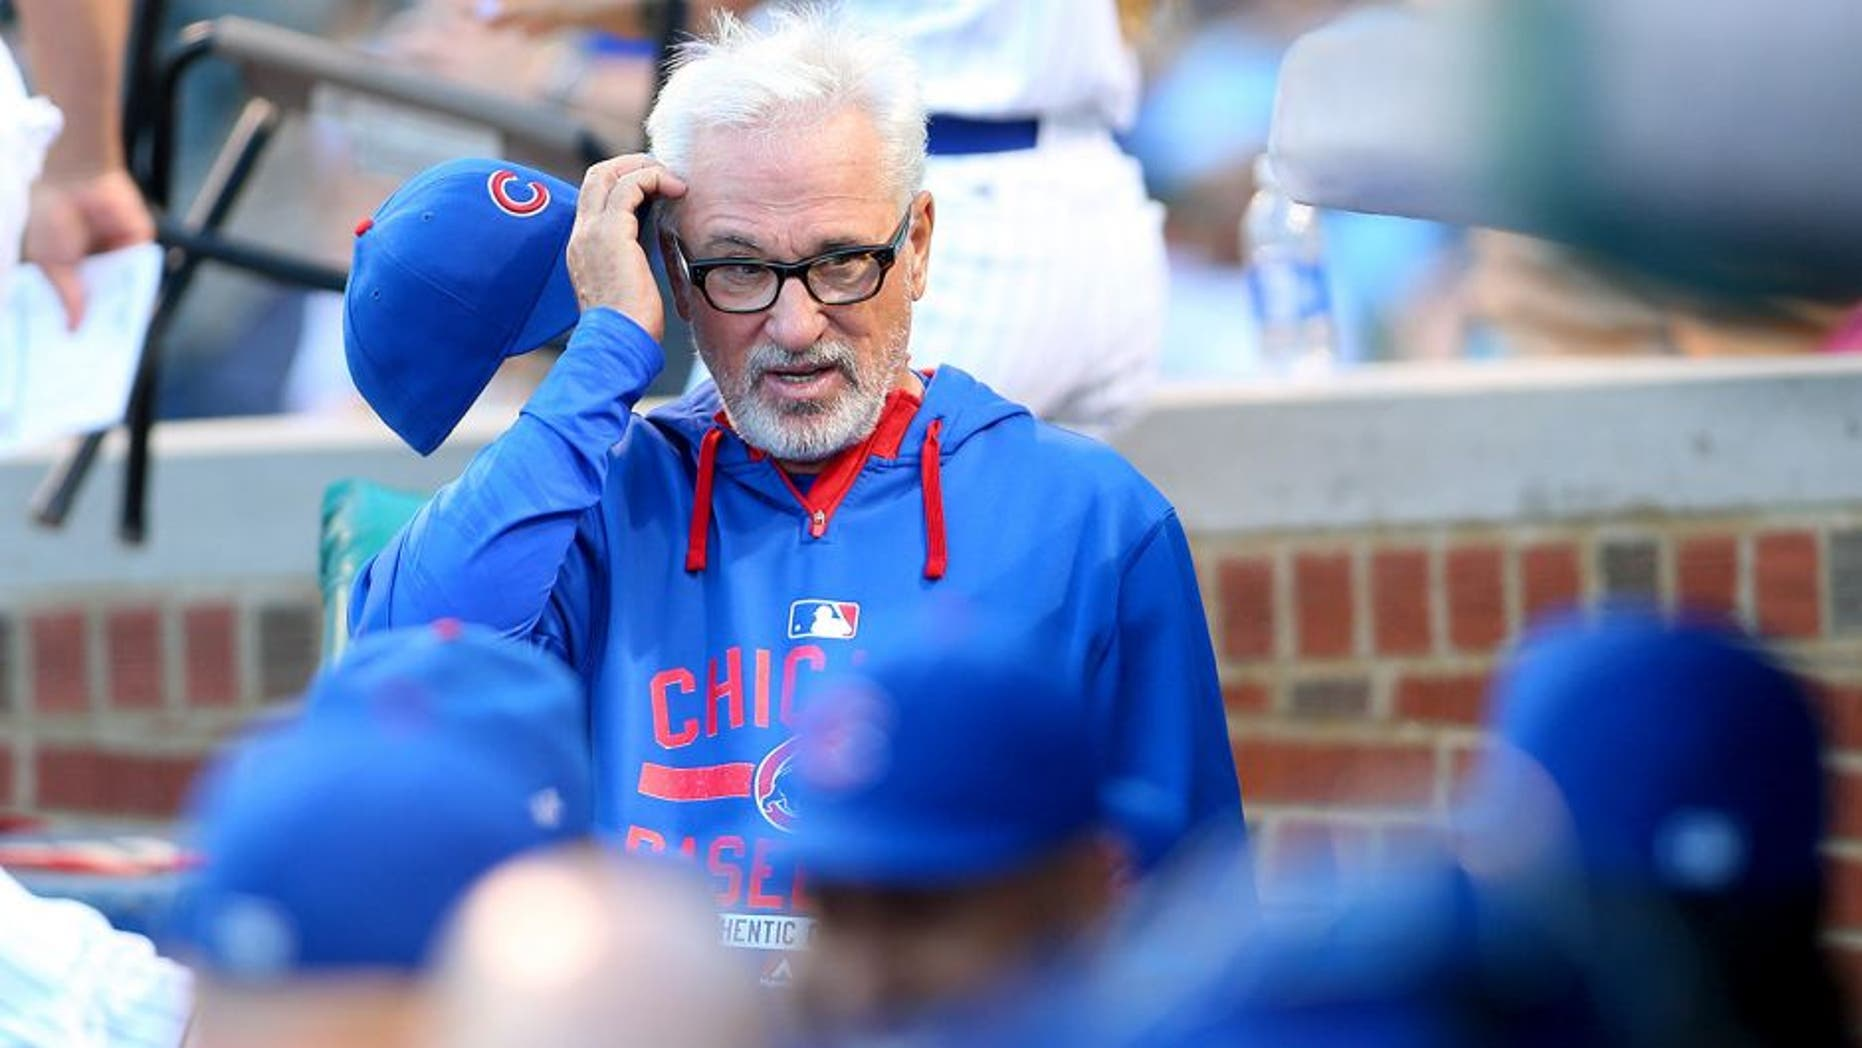 Aug 12, 2015; Chicago, IL, USA; Chicago Cubs manager Joe Maddon (70) before the game against the Milwaukee Brewers at Wrigley Field. Mandatory Credit: Caylor Arnold-USA TODAY Sports